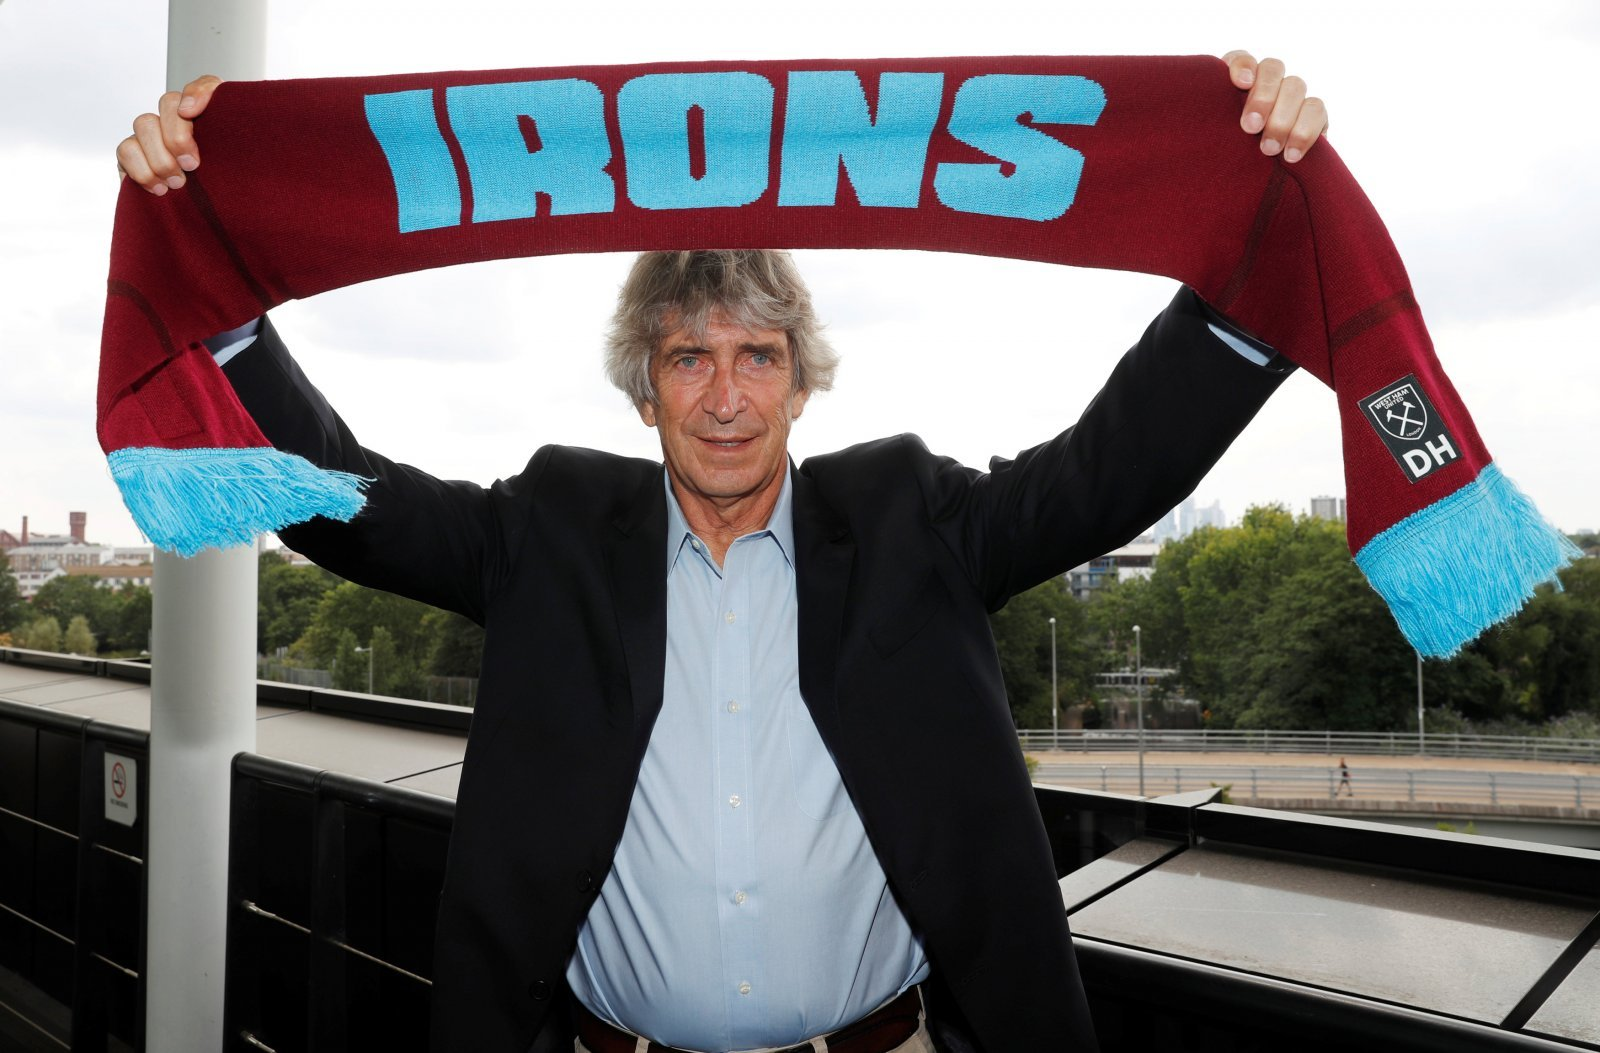 Patience proving to the key for West Ham and manager Pellegrini